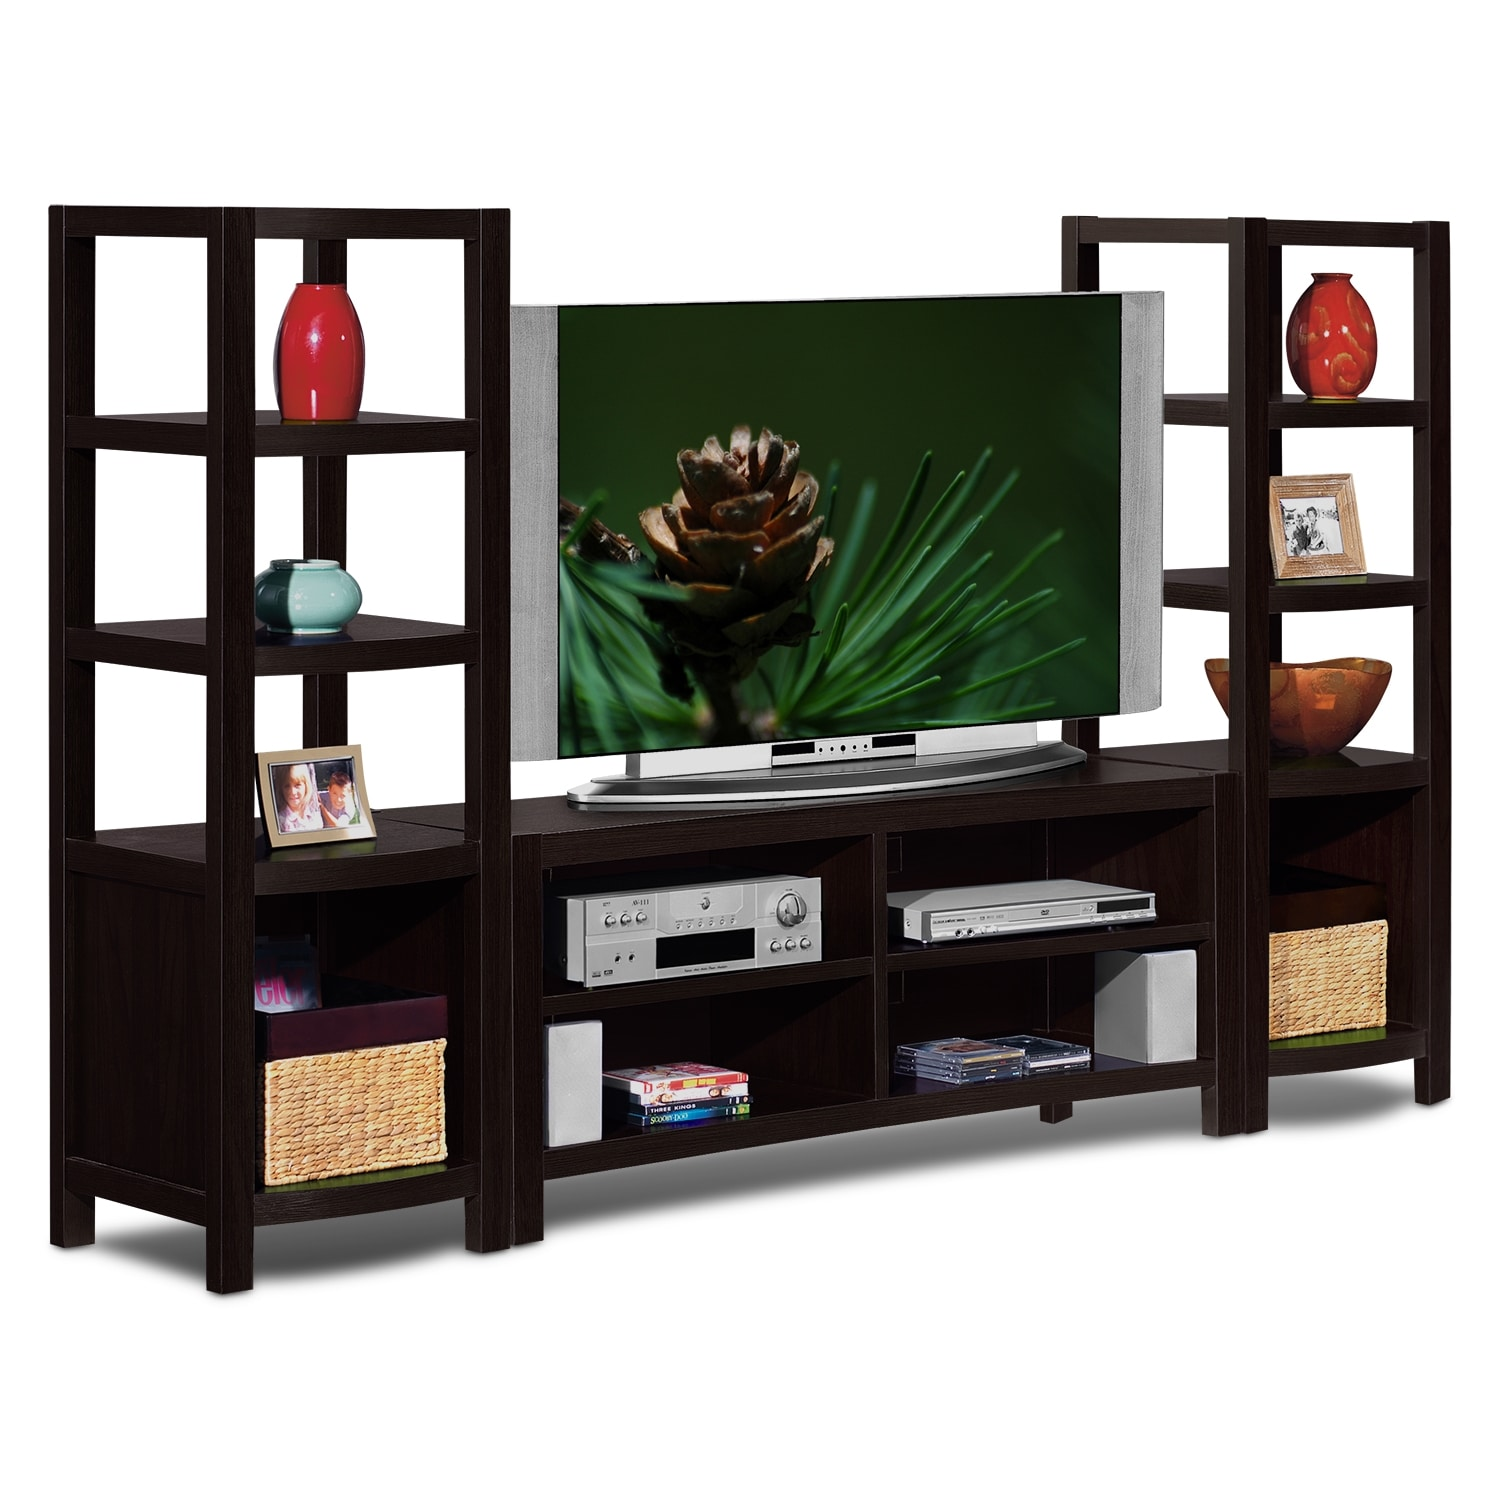 TV Stands & Media Centers Storage Cabinets